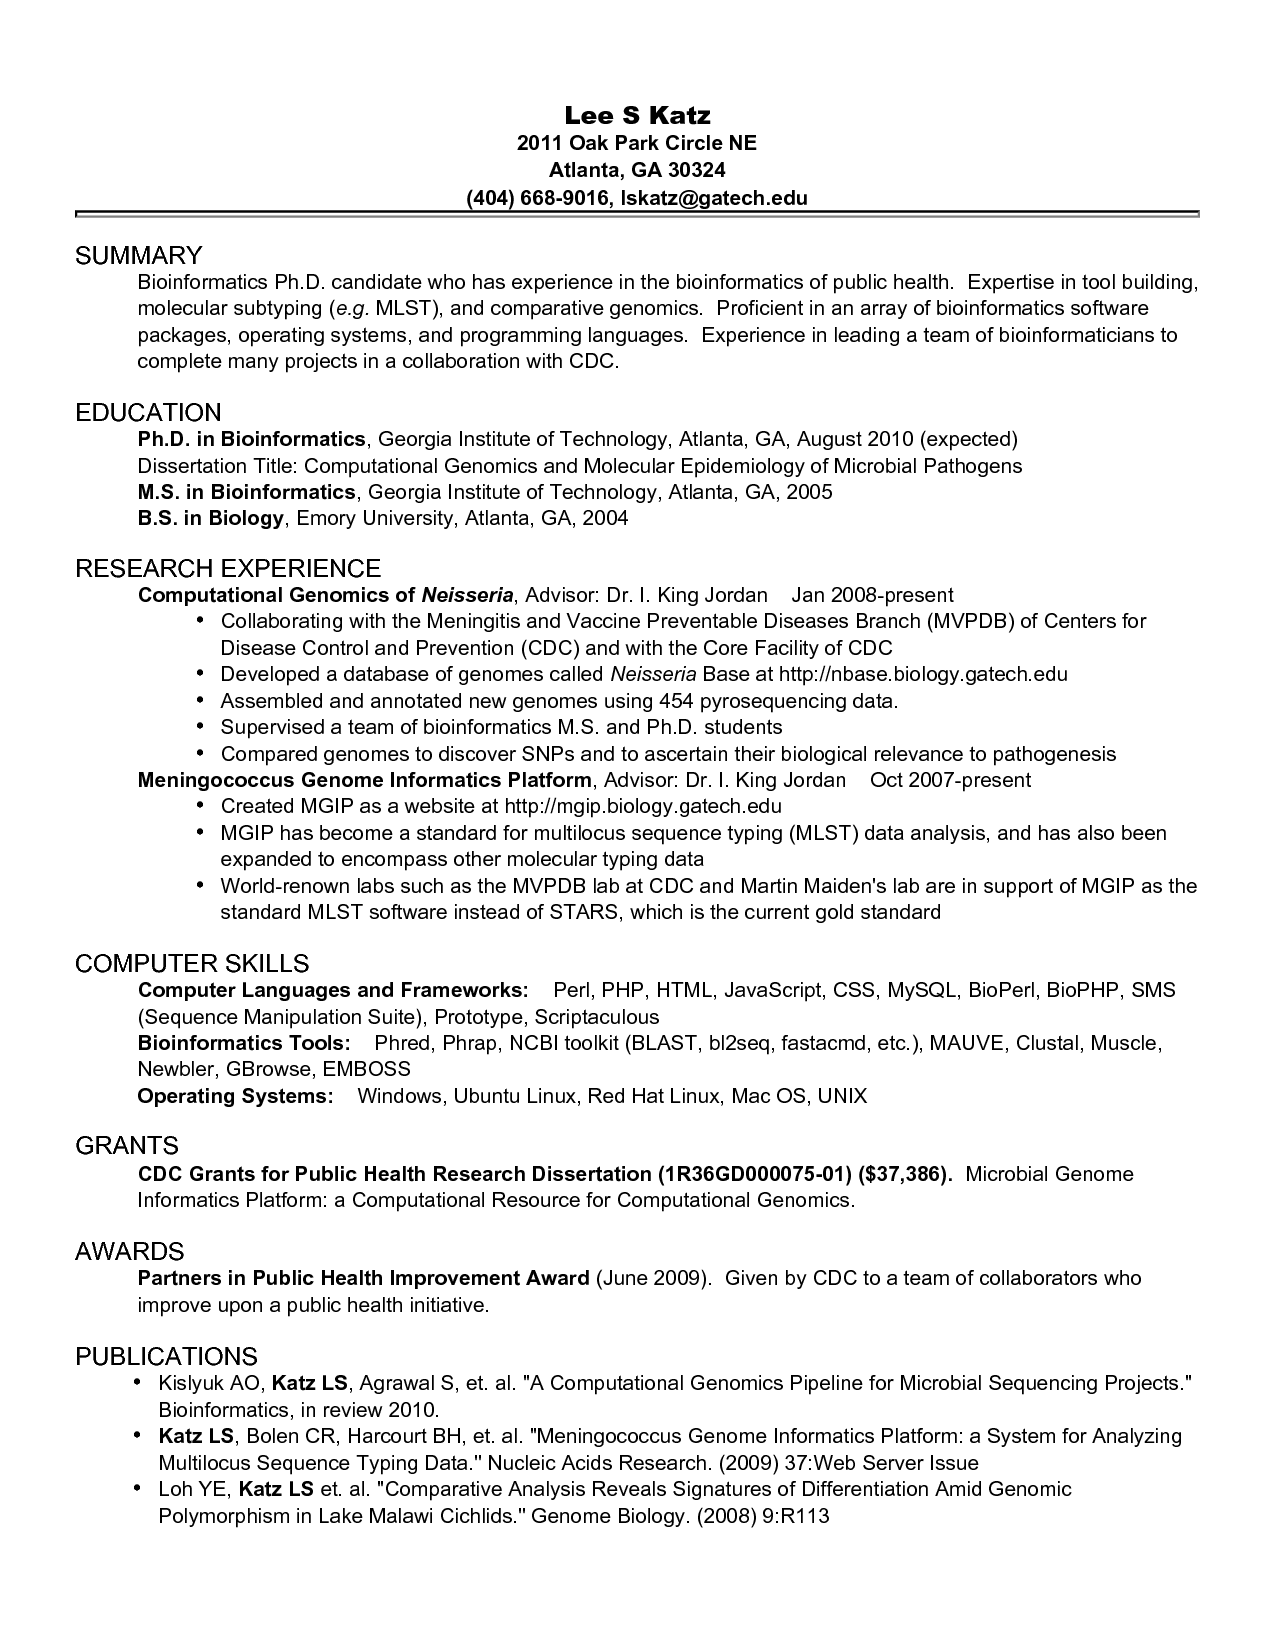 phd academic cv resume